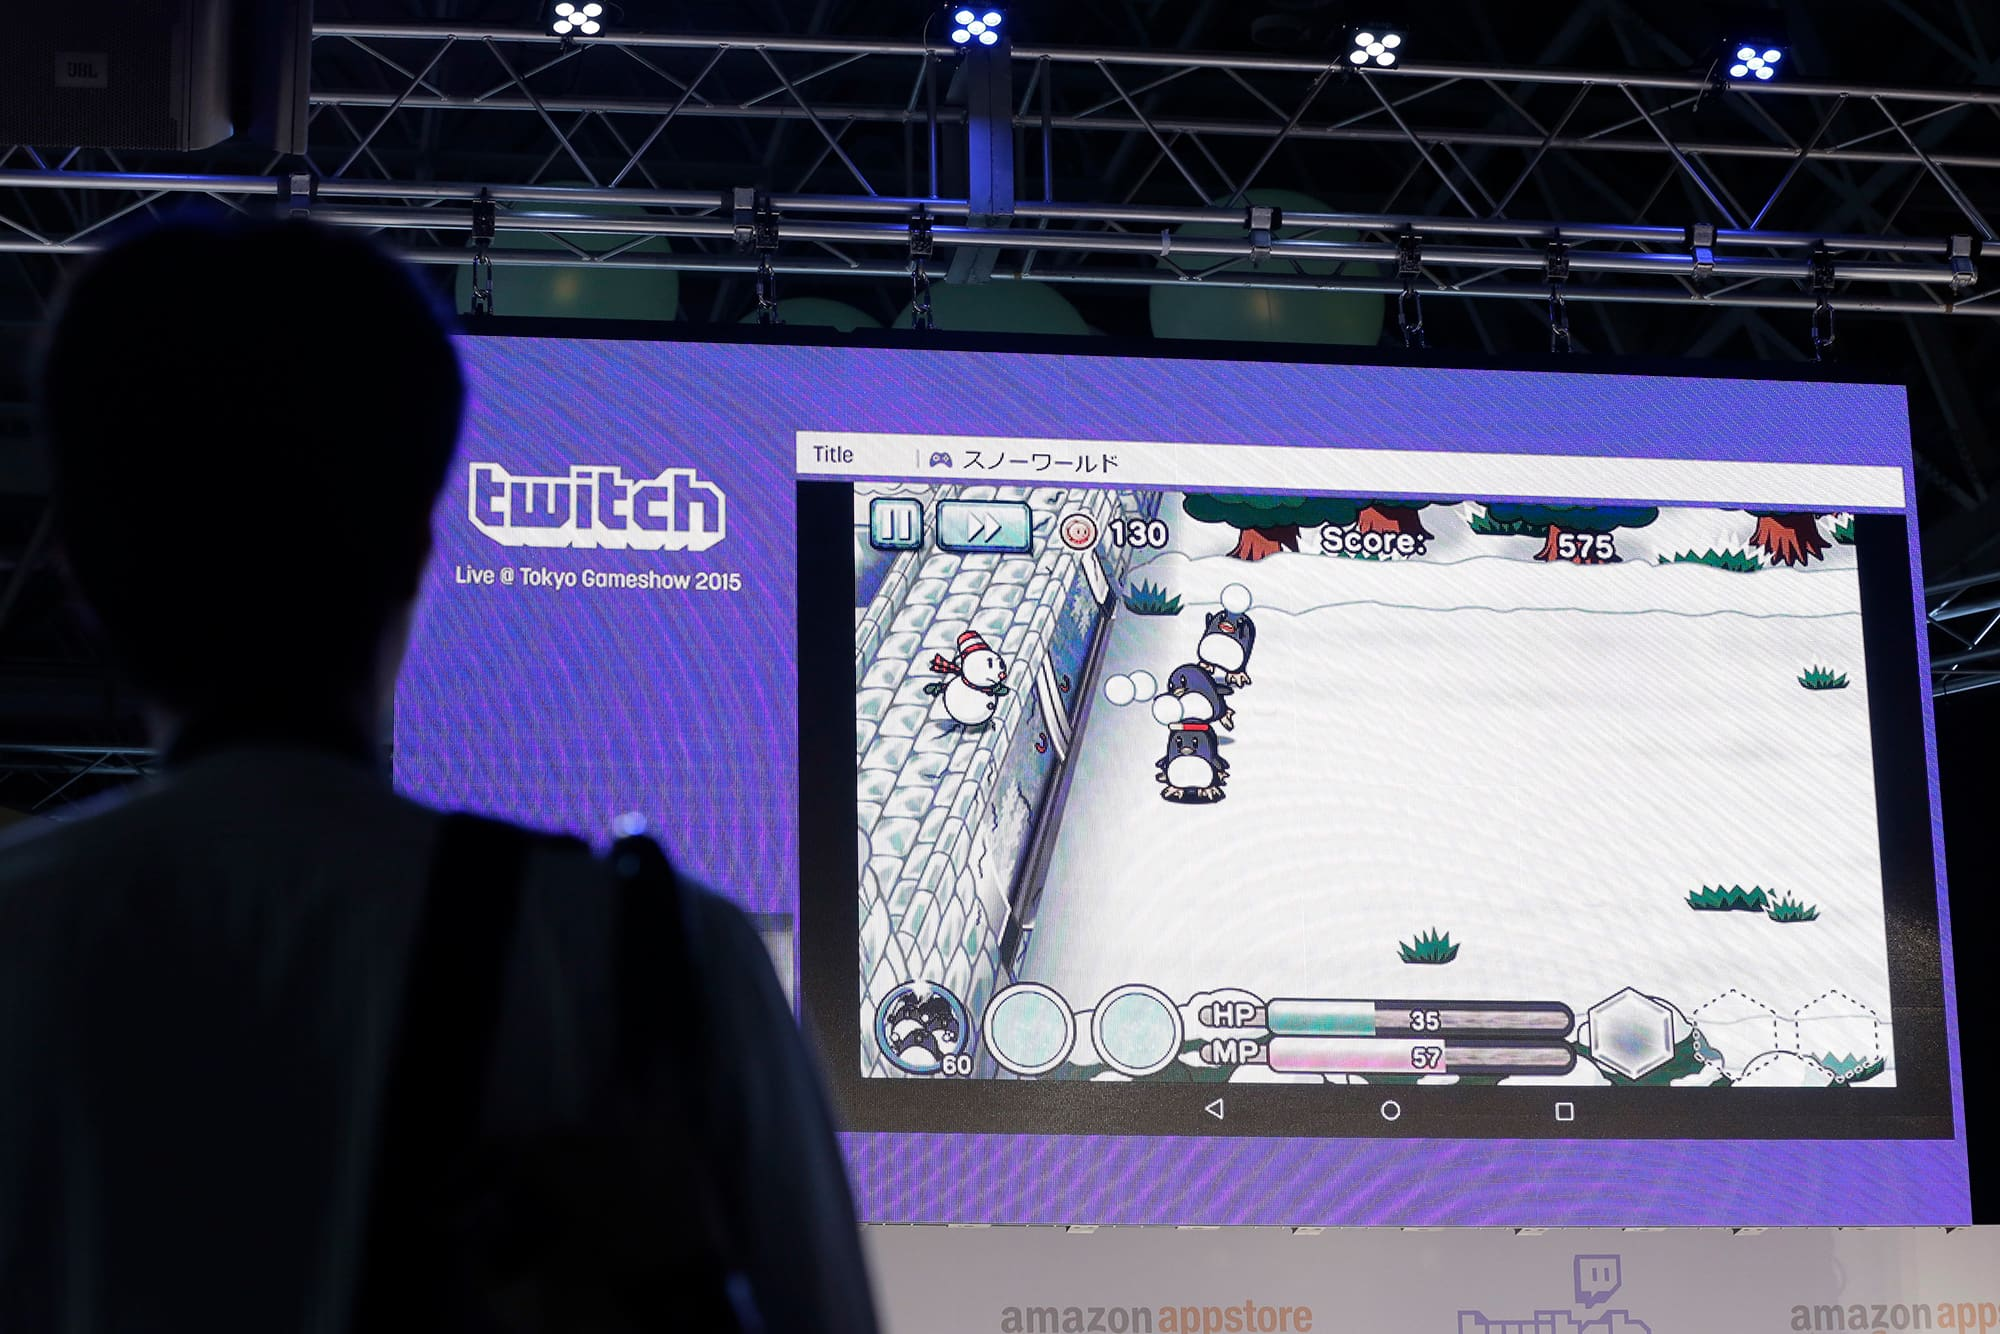 Hacker Breaches Amazon's Twitch Video Site, Exposing Future Product Plans